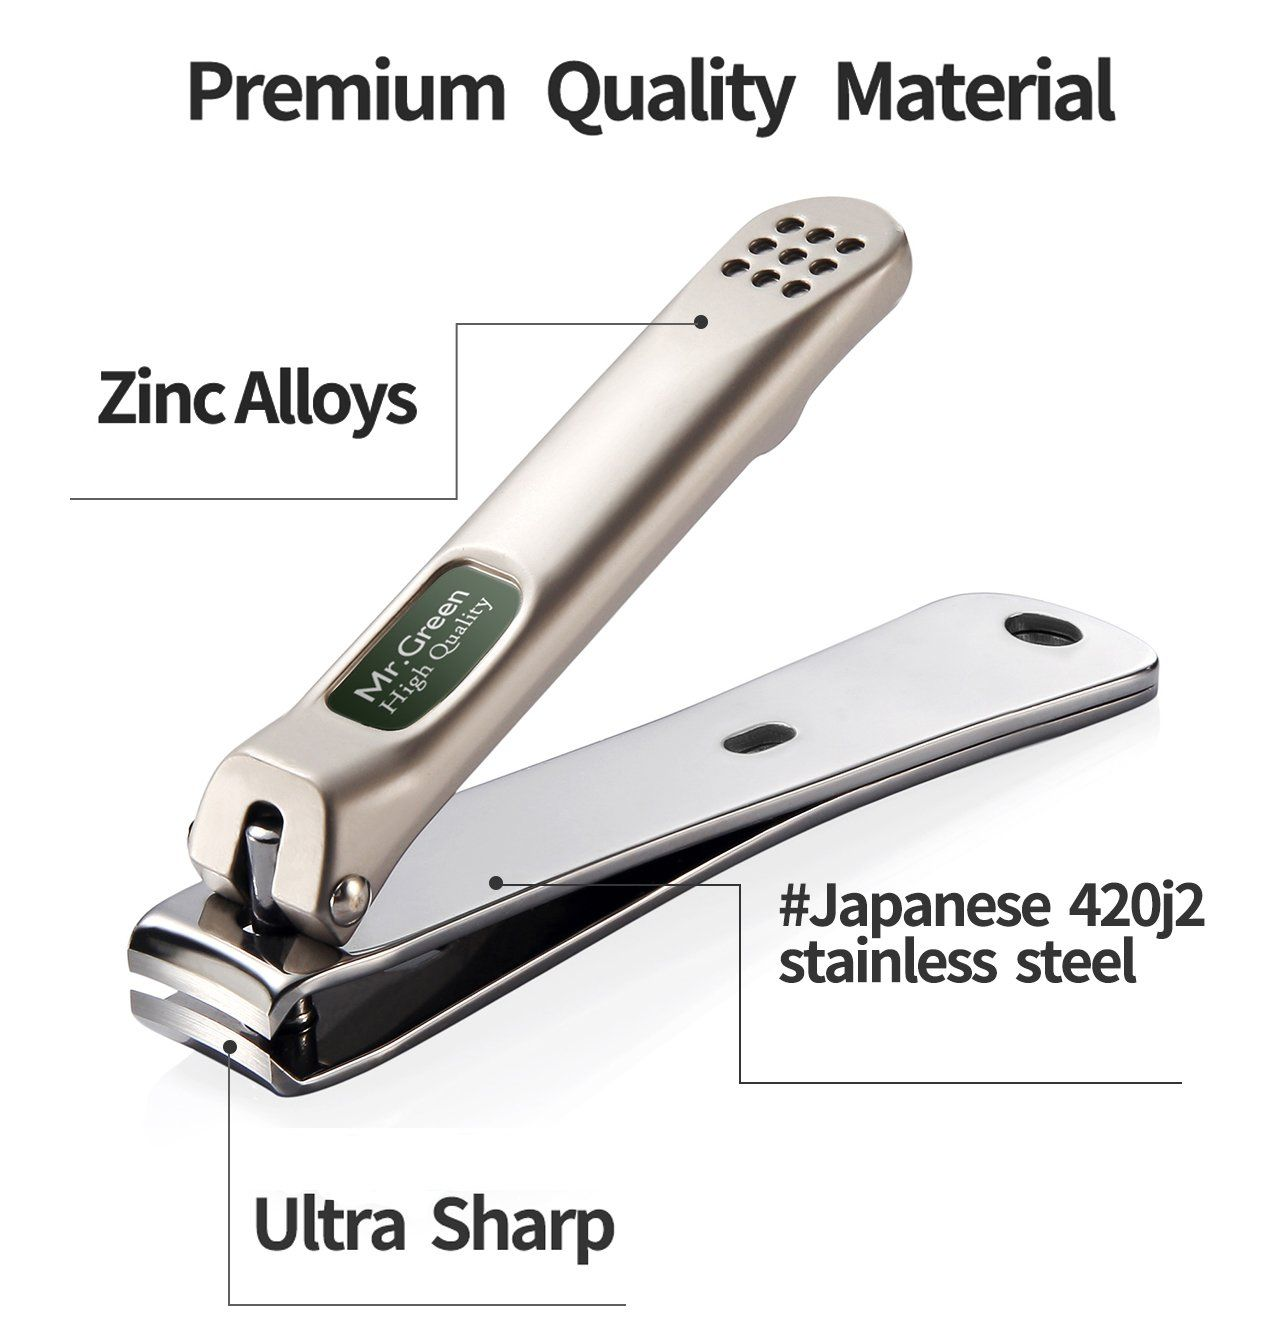 Nail Clippers For Fingernailsfish Scale Like Nail File Popular Gifts For Men Naildesignideas